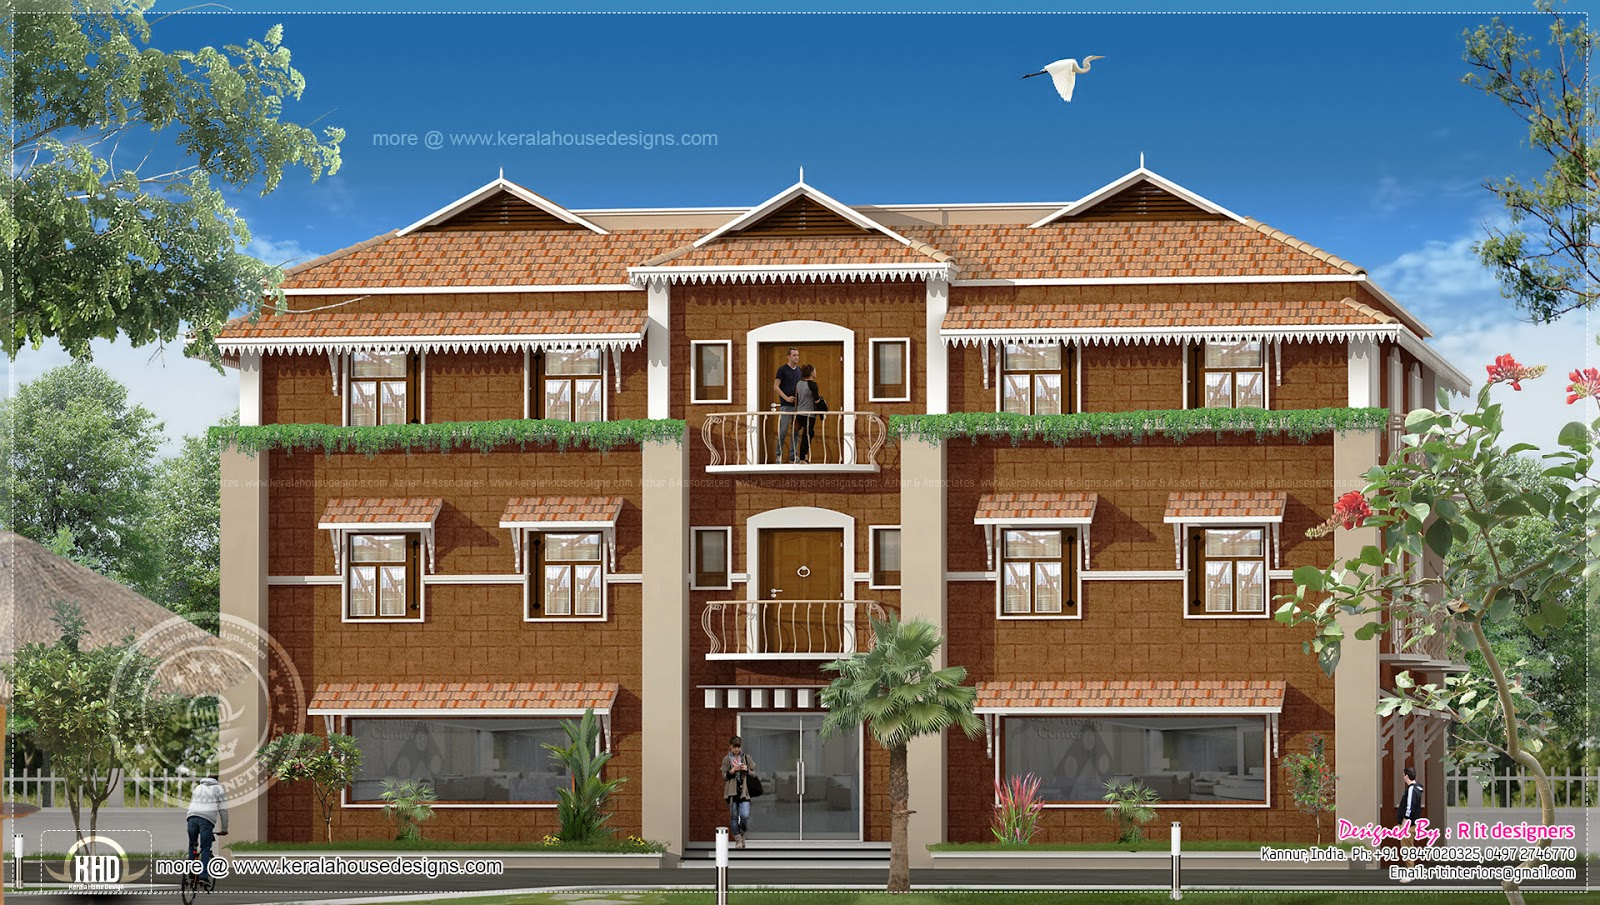 Duplex house elevation design in kerala home kerala plans - Duplex home elevation design photos ...